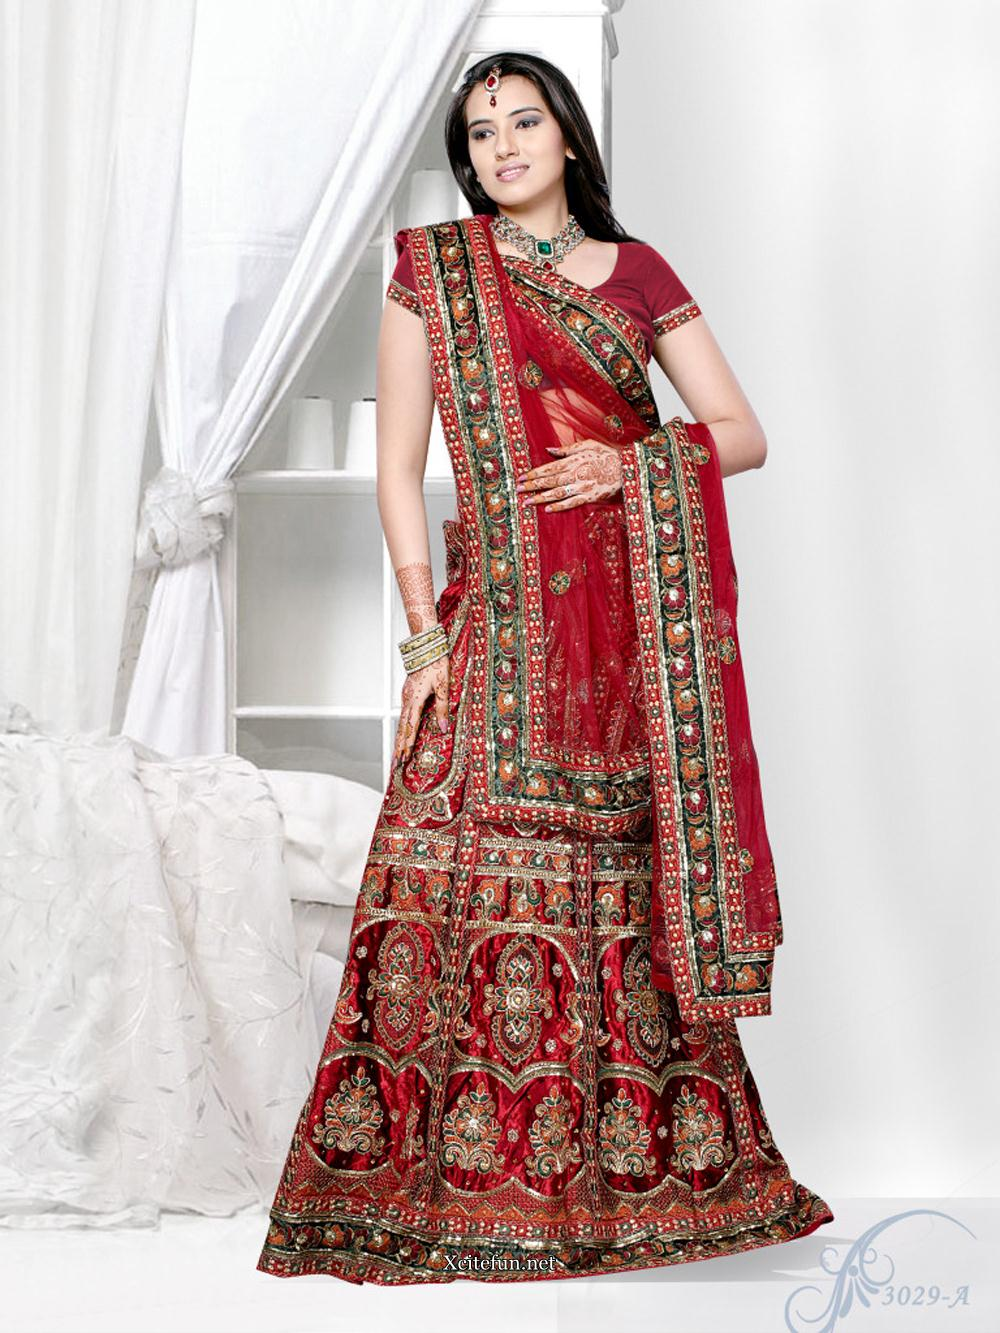 Bridal Red Lehenga Choli Collection